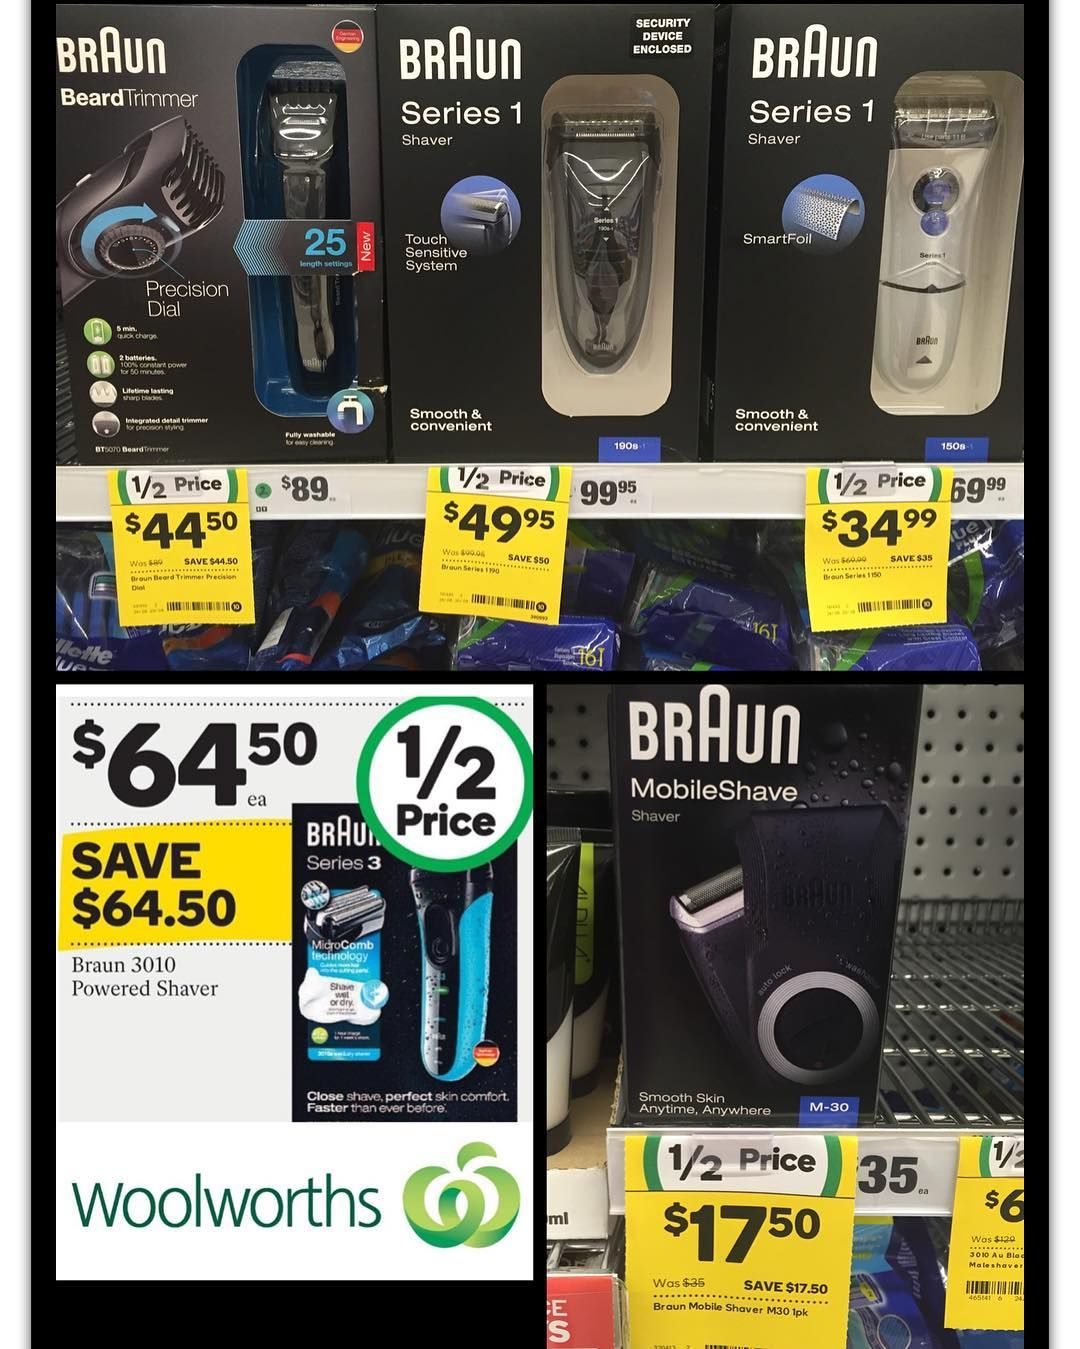 Check out these #Braun products #onsale for #halfprice this week at #woolies. Offer ends 30.8.16 @woolworths_au . . . . #poweredshaver #shaver #beardtrimmer #mobileshave #woolworths #giftideasforhim #giftideasformen #fathersday2016 #50percentoff #bargain #qualityforless #whypaymore #bargainshopper #smartshopper #savvysaver #aug16